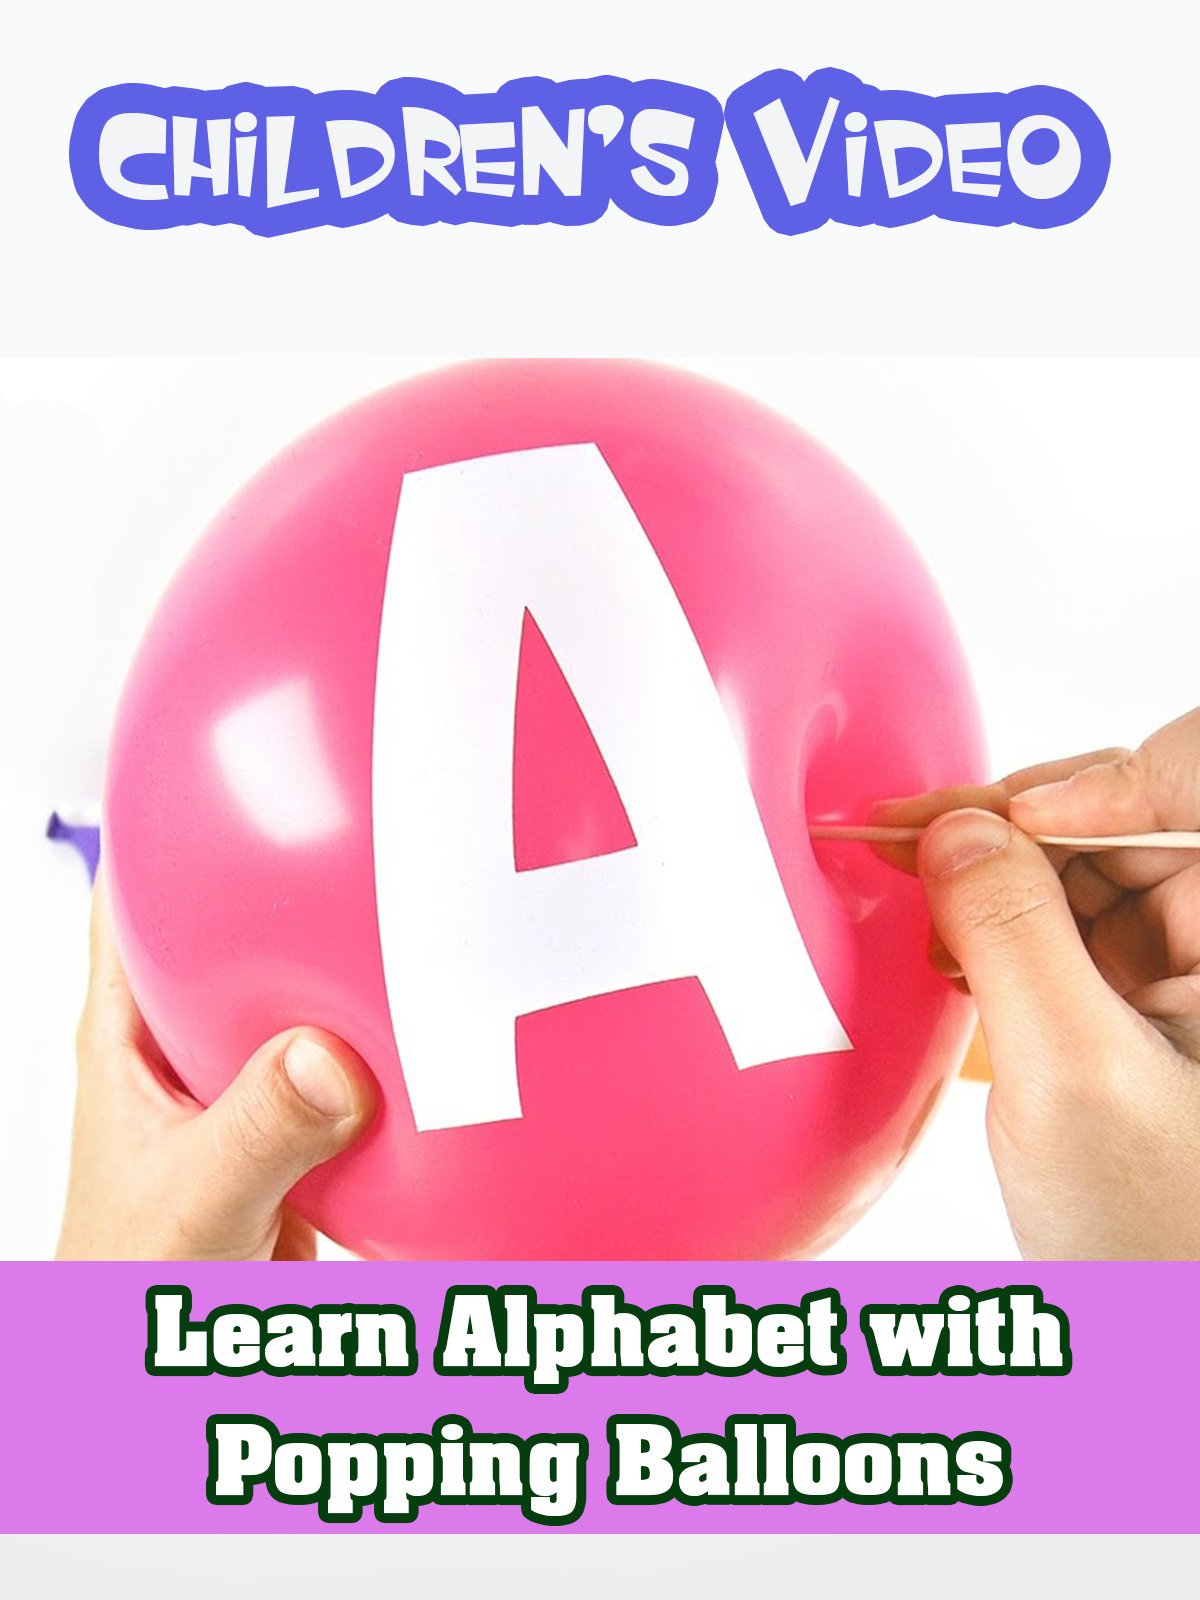 Learn Alphabet with Popping Balloons